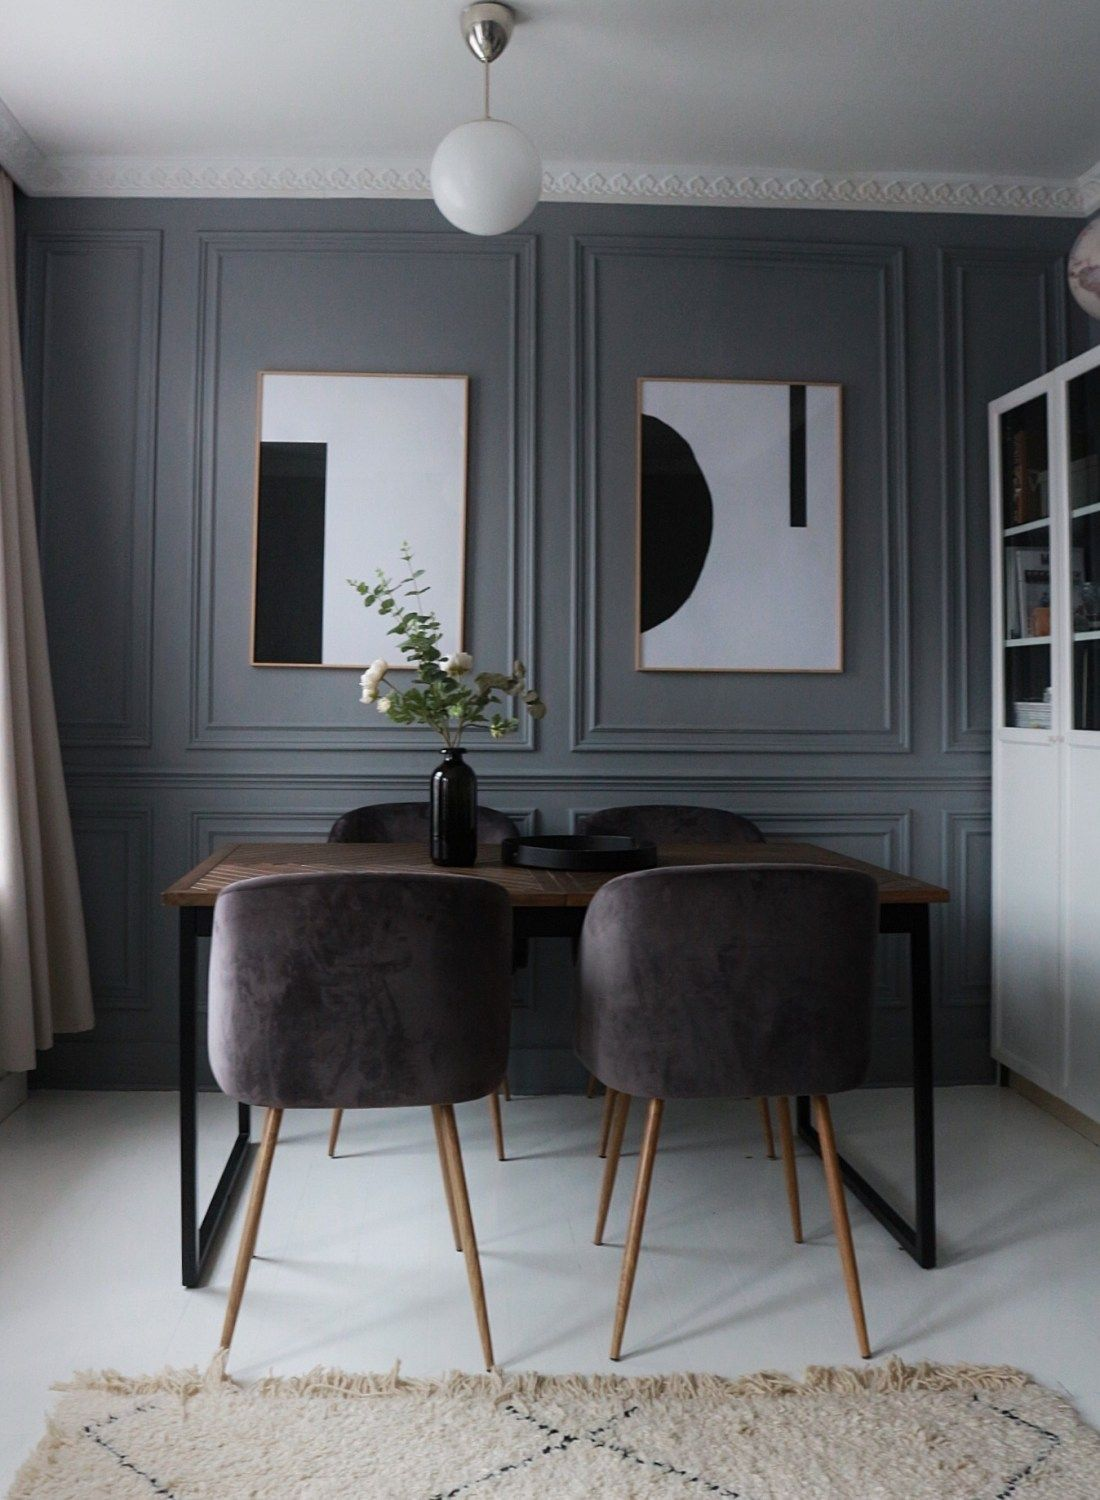 Living Room Wall Panel Design: How To Create Architectural Wall Panels/Moldings